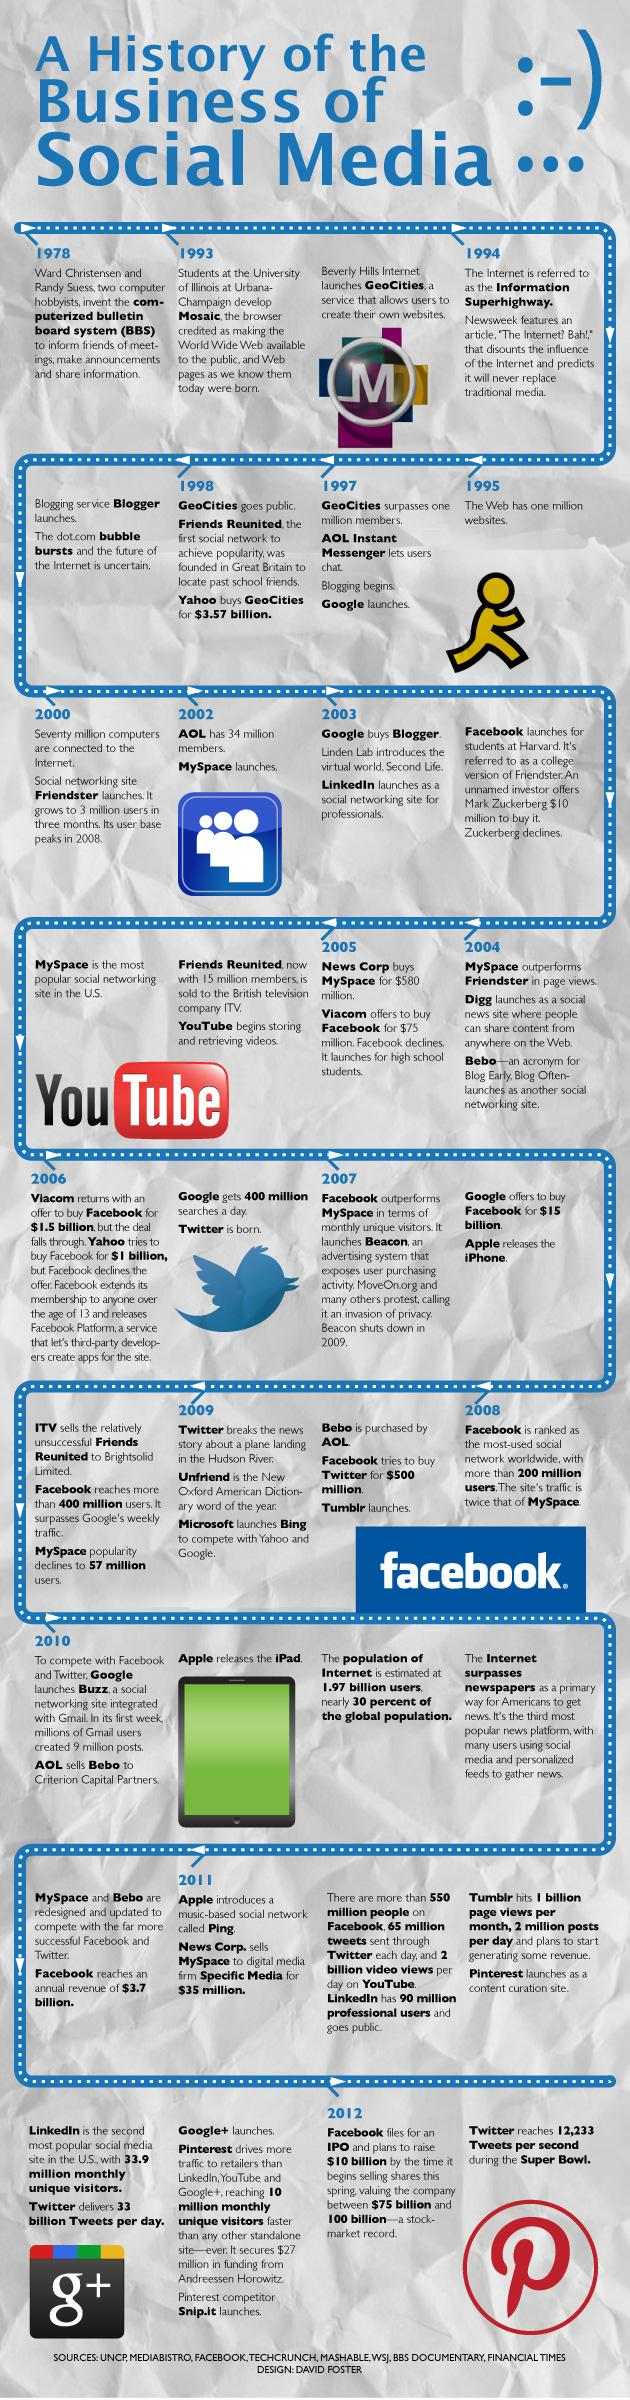 A Wonderful History of the Business of Social Media. Everybody READ THIS!! :-)